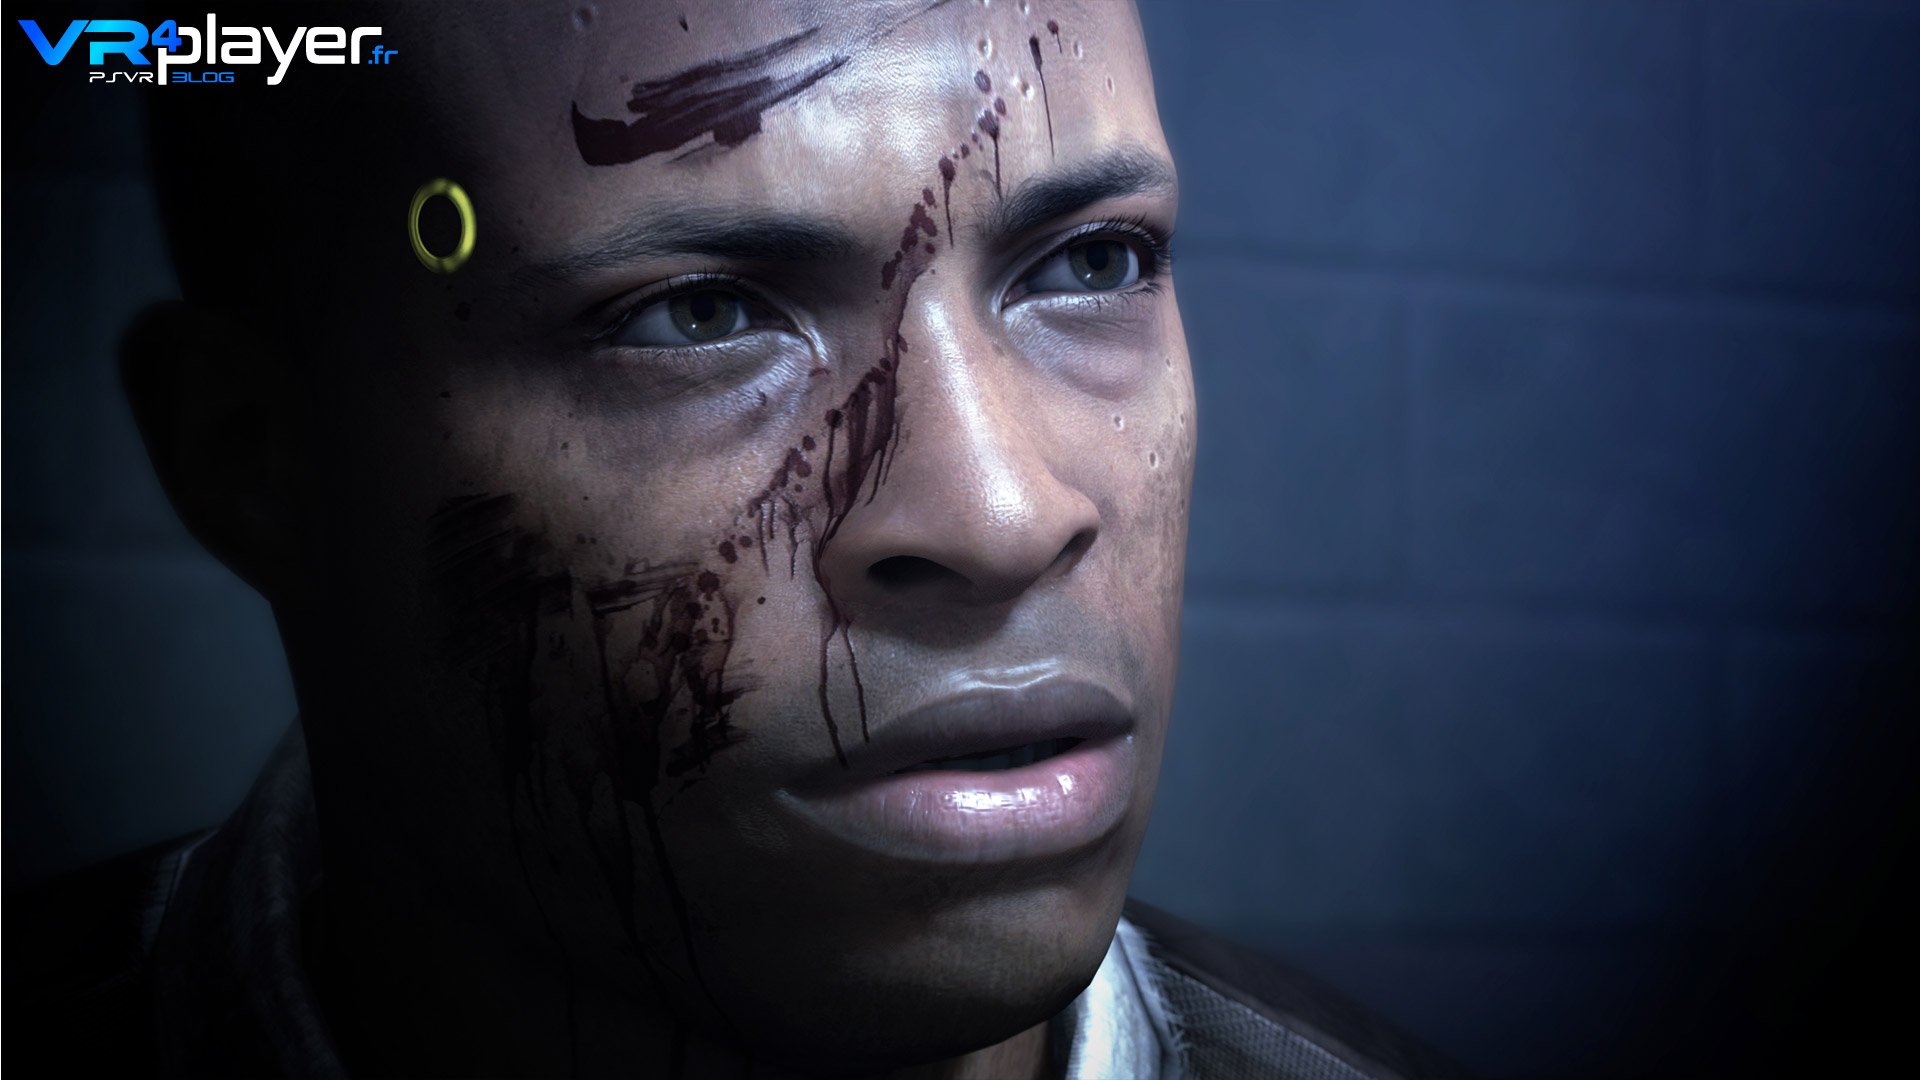 Detroit Become Human Le Film complet en 9 épisodes FR PS4 Pro VR4Player